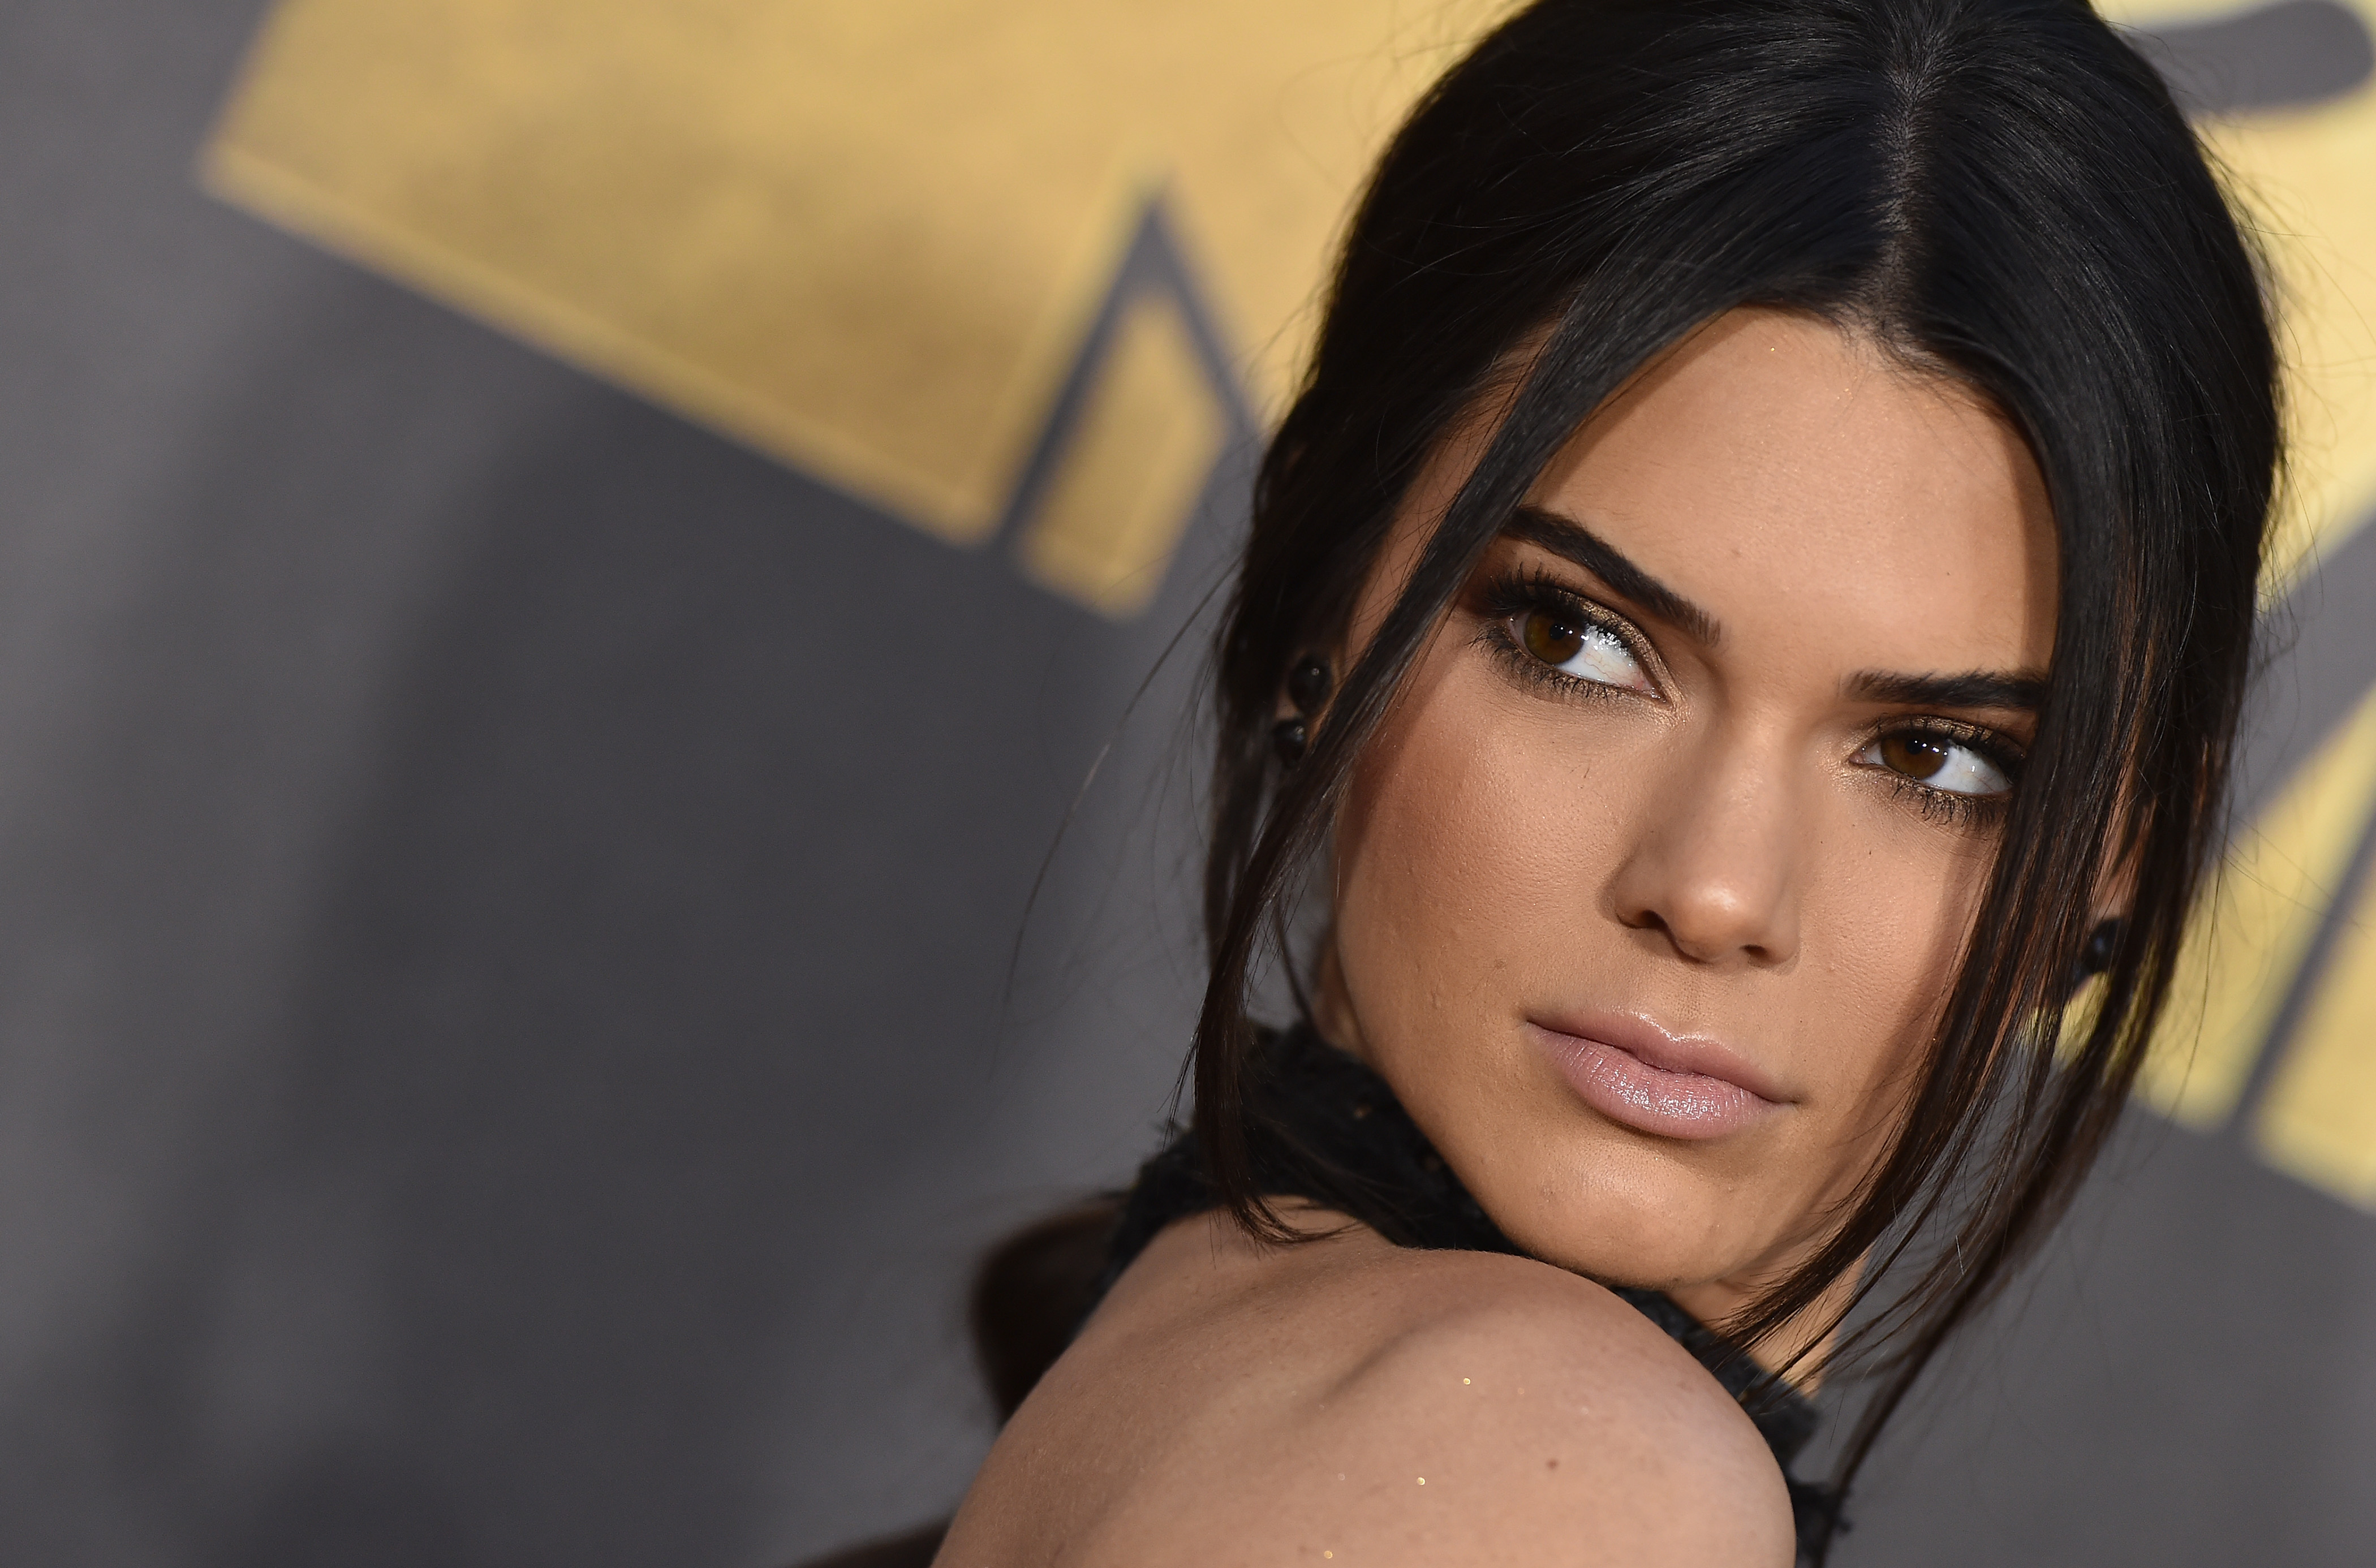 Hang on – has Kendall Jenner just confirmed she's dating this hunky sports star?